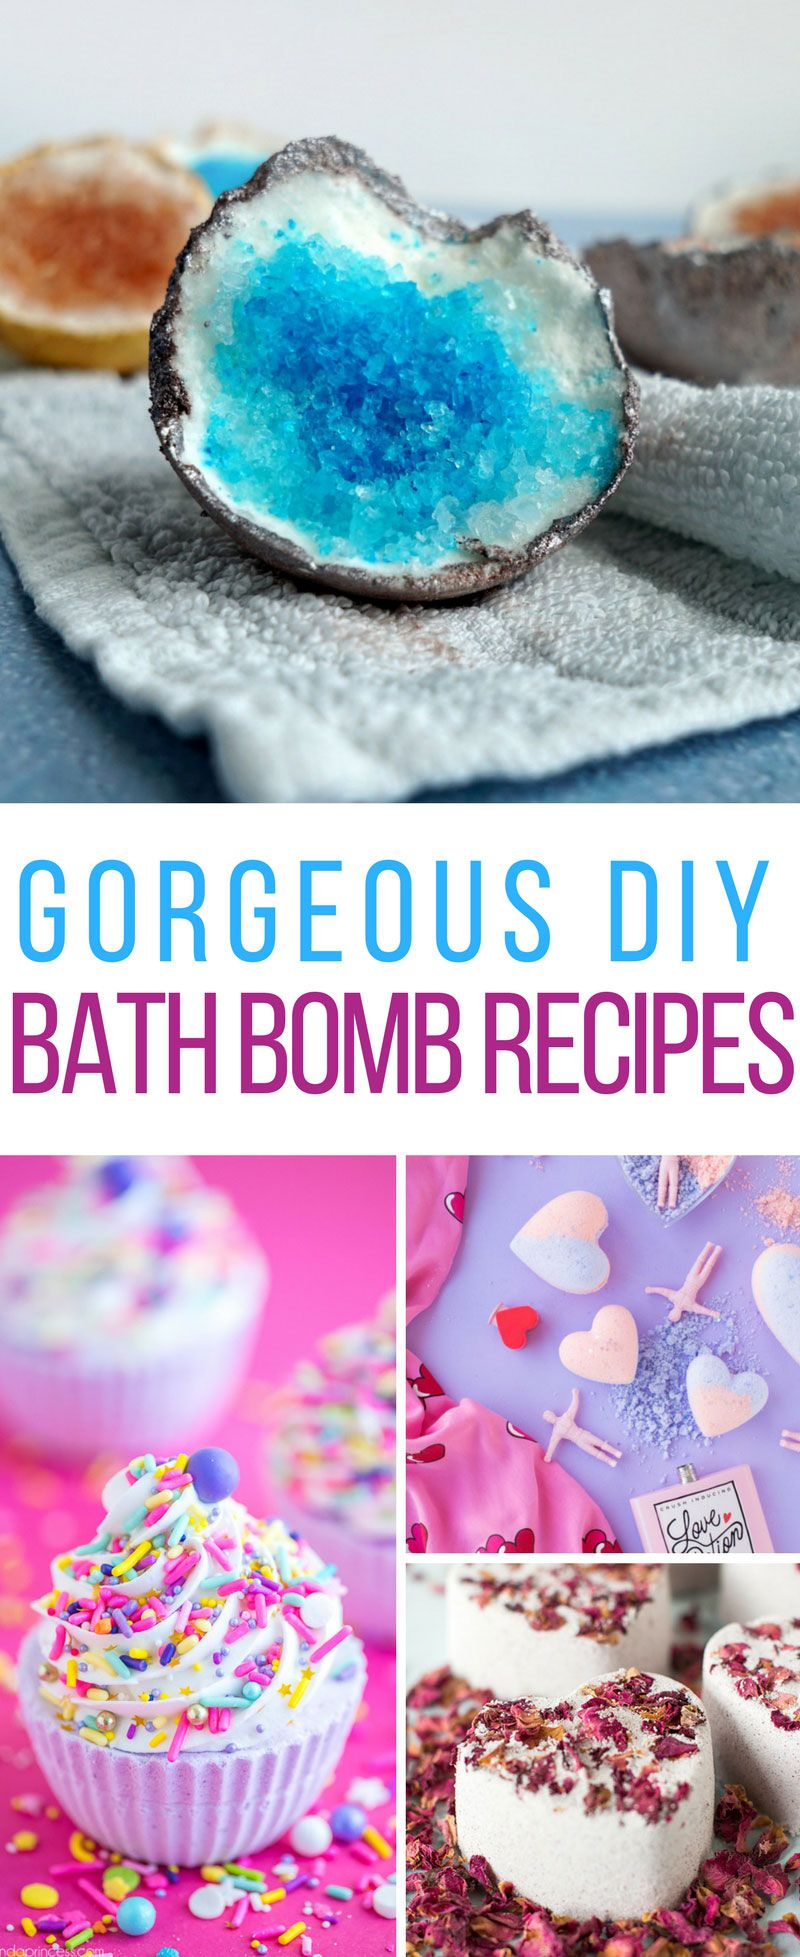 These diy bath bombs will make fabulous gifts thanks for sharing